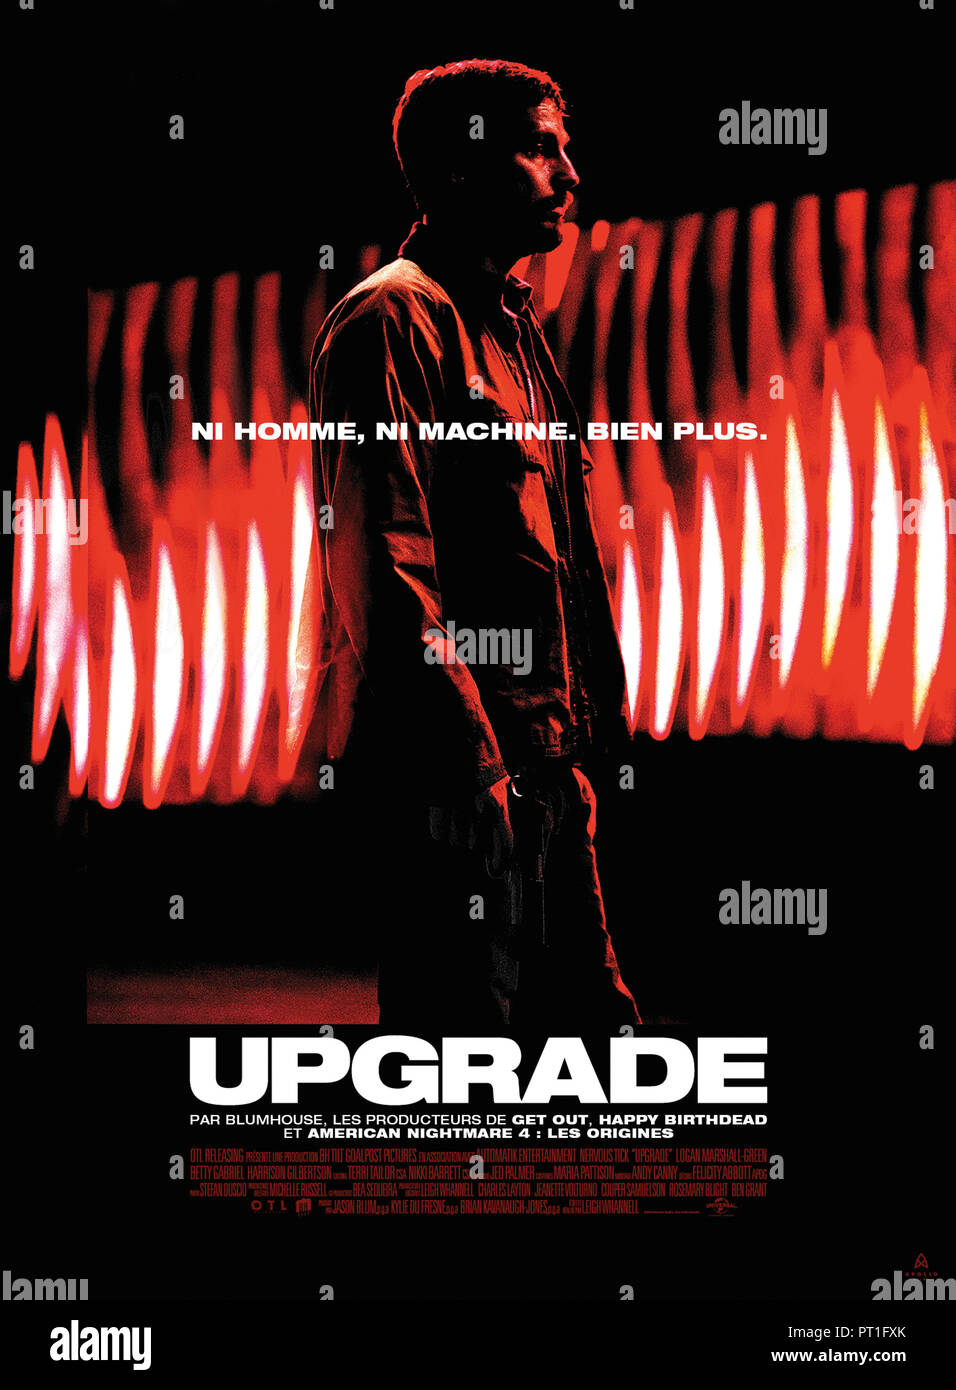 Prod DB © Blumhouse Productions - Goalpost Pictures / DR UPGRADE de Leigh Whannell 2018 AUST. affiche française Logan Marshall-Green Melanie Vallejo B Stock Photo